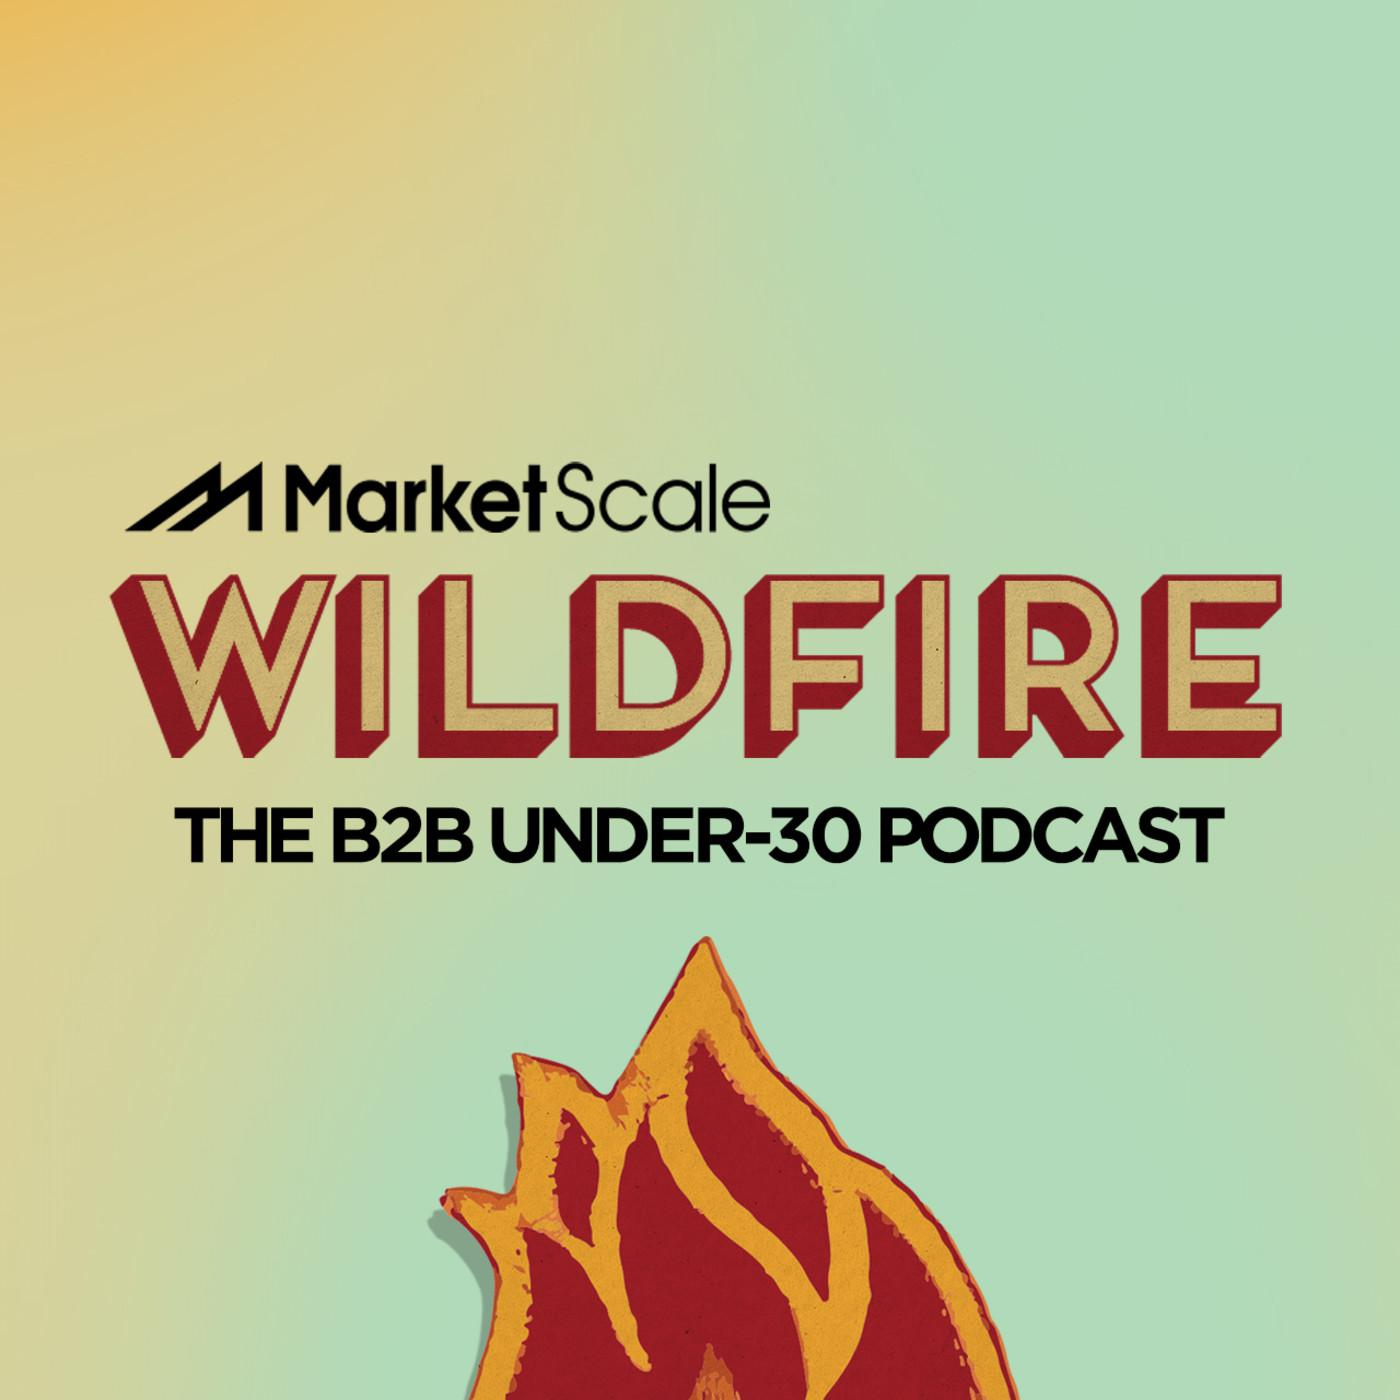 Wildfire: The B2B Under-30 Podcast - MarketScale | Listen Notes